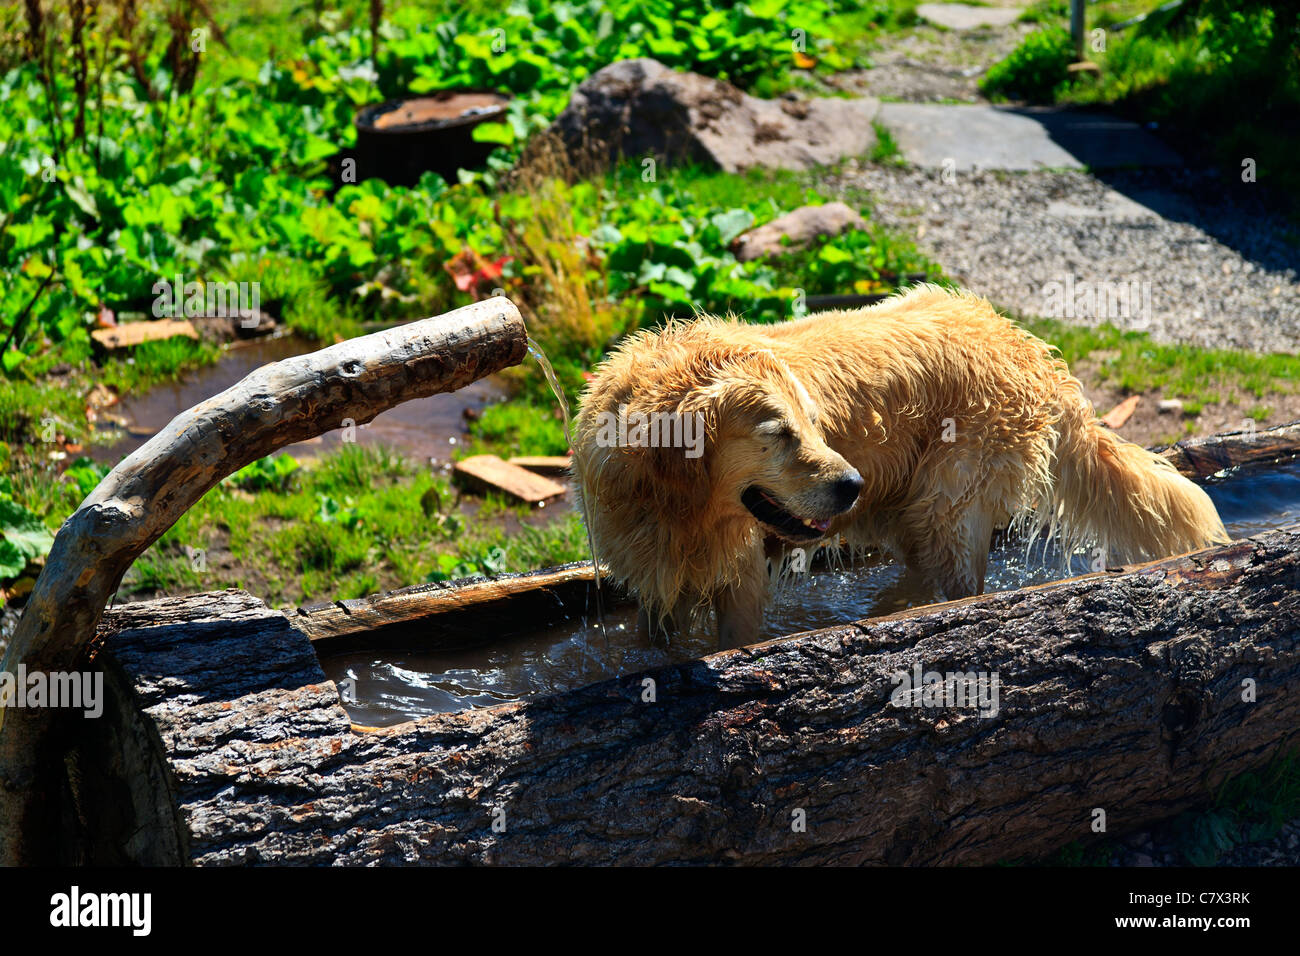 Dog in water trough cooling down on hot day - Stock Image